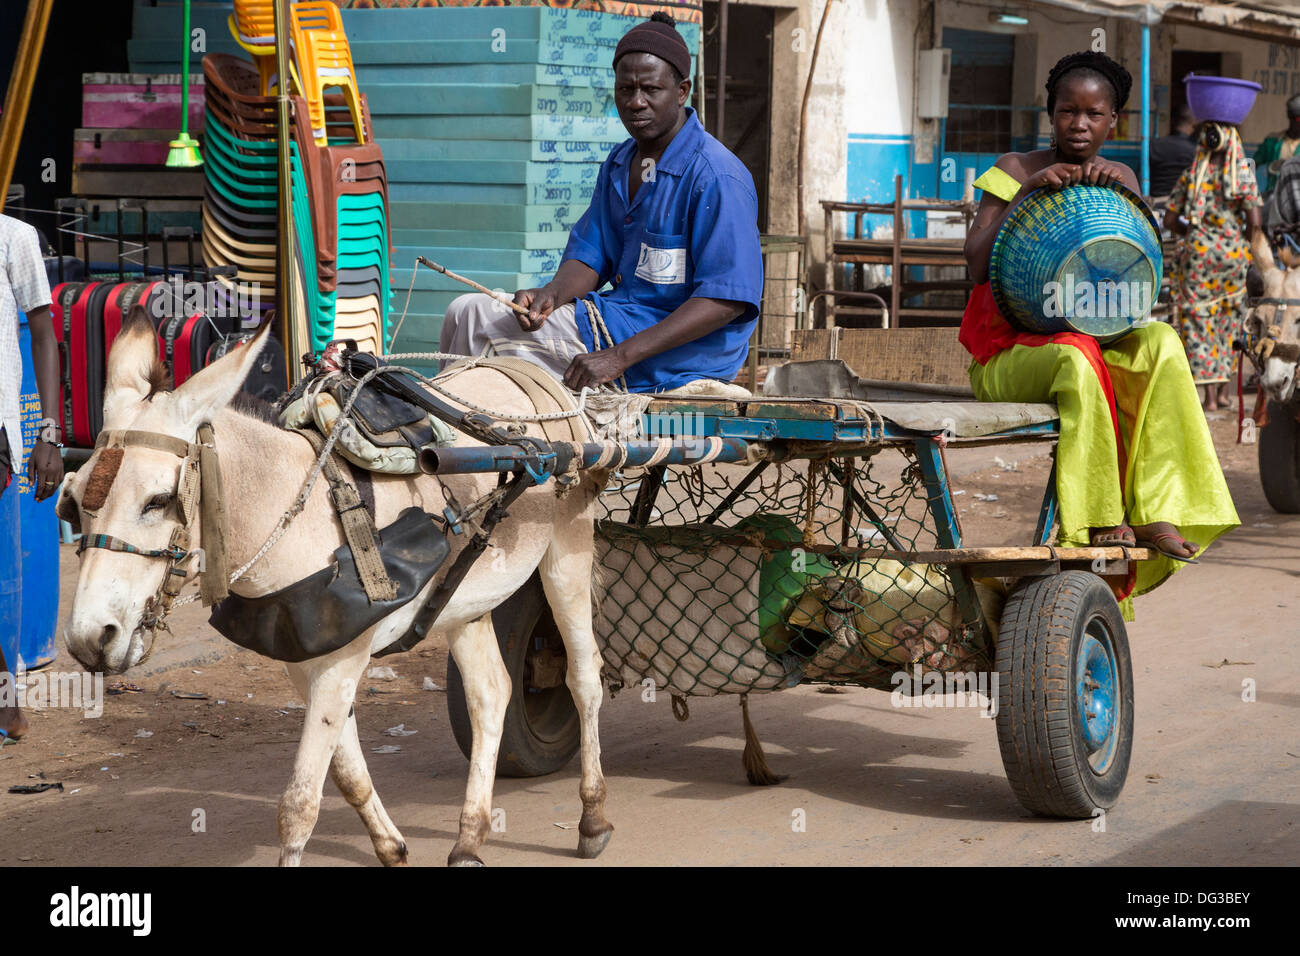 Senegal, Touba. Donkey-drawn Carts Provide Taxi Service for Market Shoppers. - Stock Image